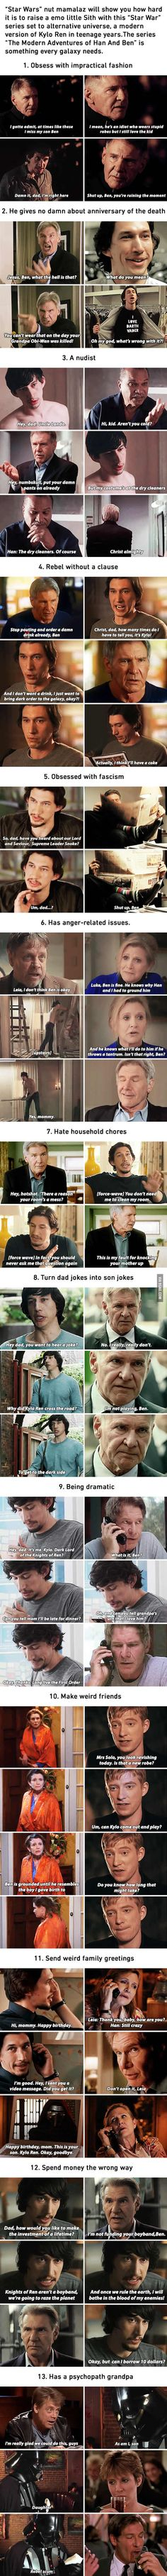 The Modern Adventures Of Han Solo And Kylo Ren Are The Show Every Galaxy Needs (By Mamalaz)